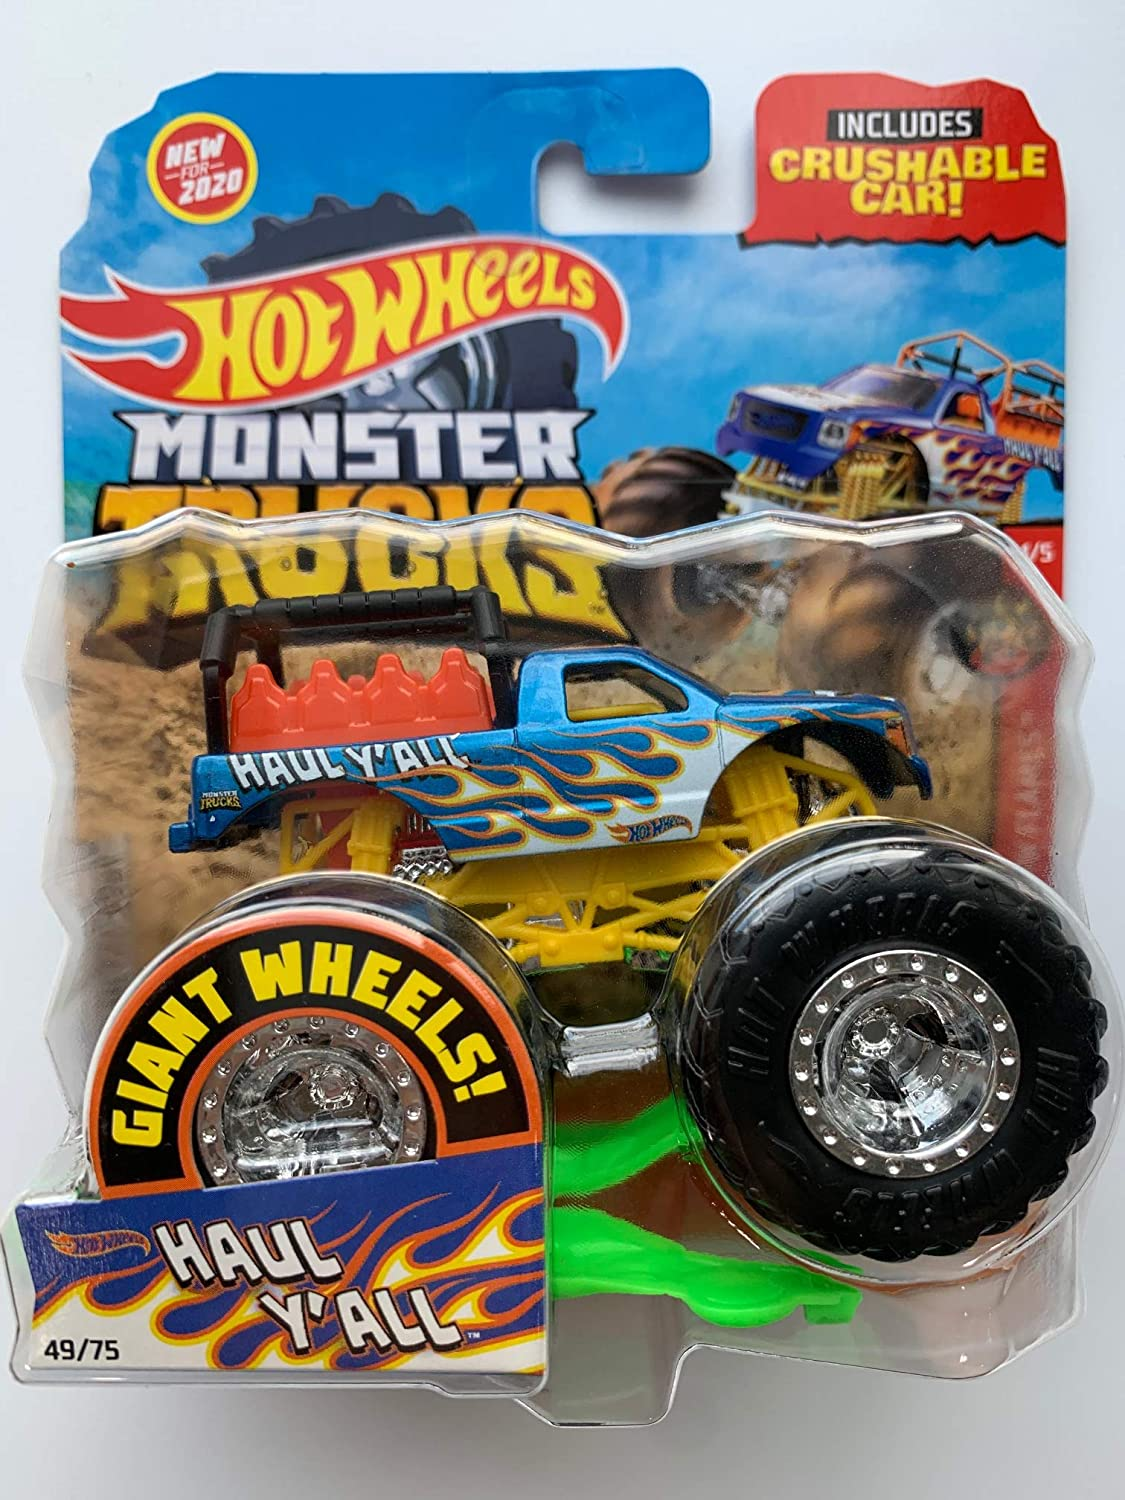 Amazon Com Hot Wheels Monster Trucks 2020 1 64 Scale Truck With Crushable Car 49 75 Hw Flames 4 5 Haul Y All Toys Games